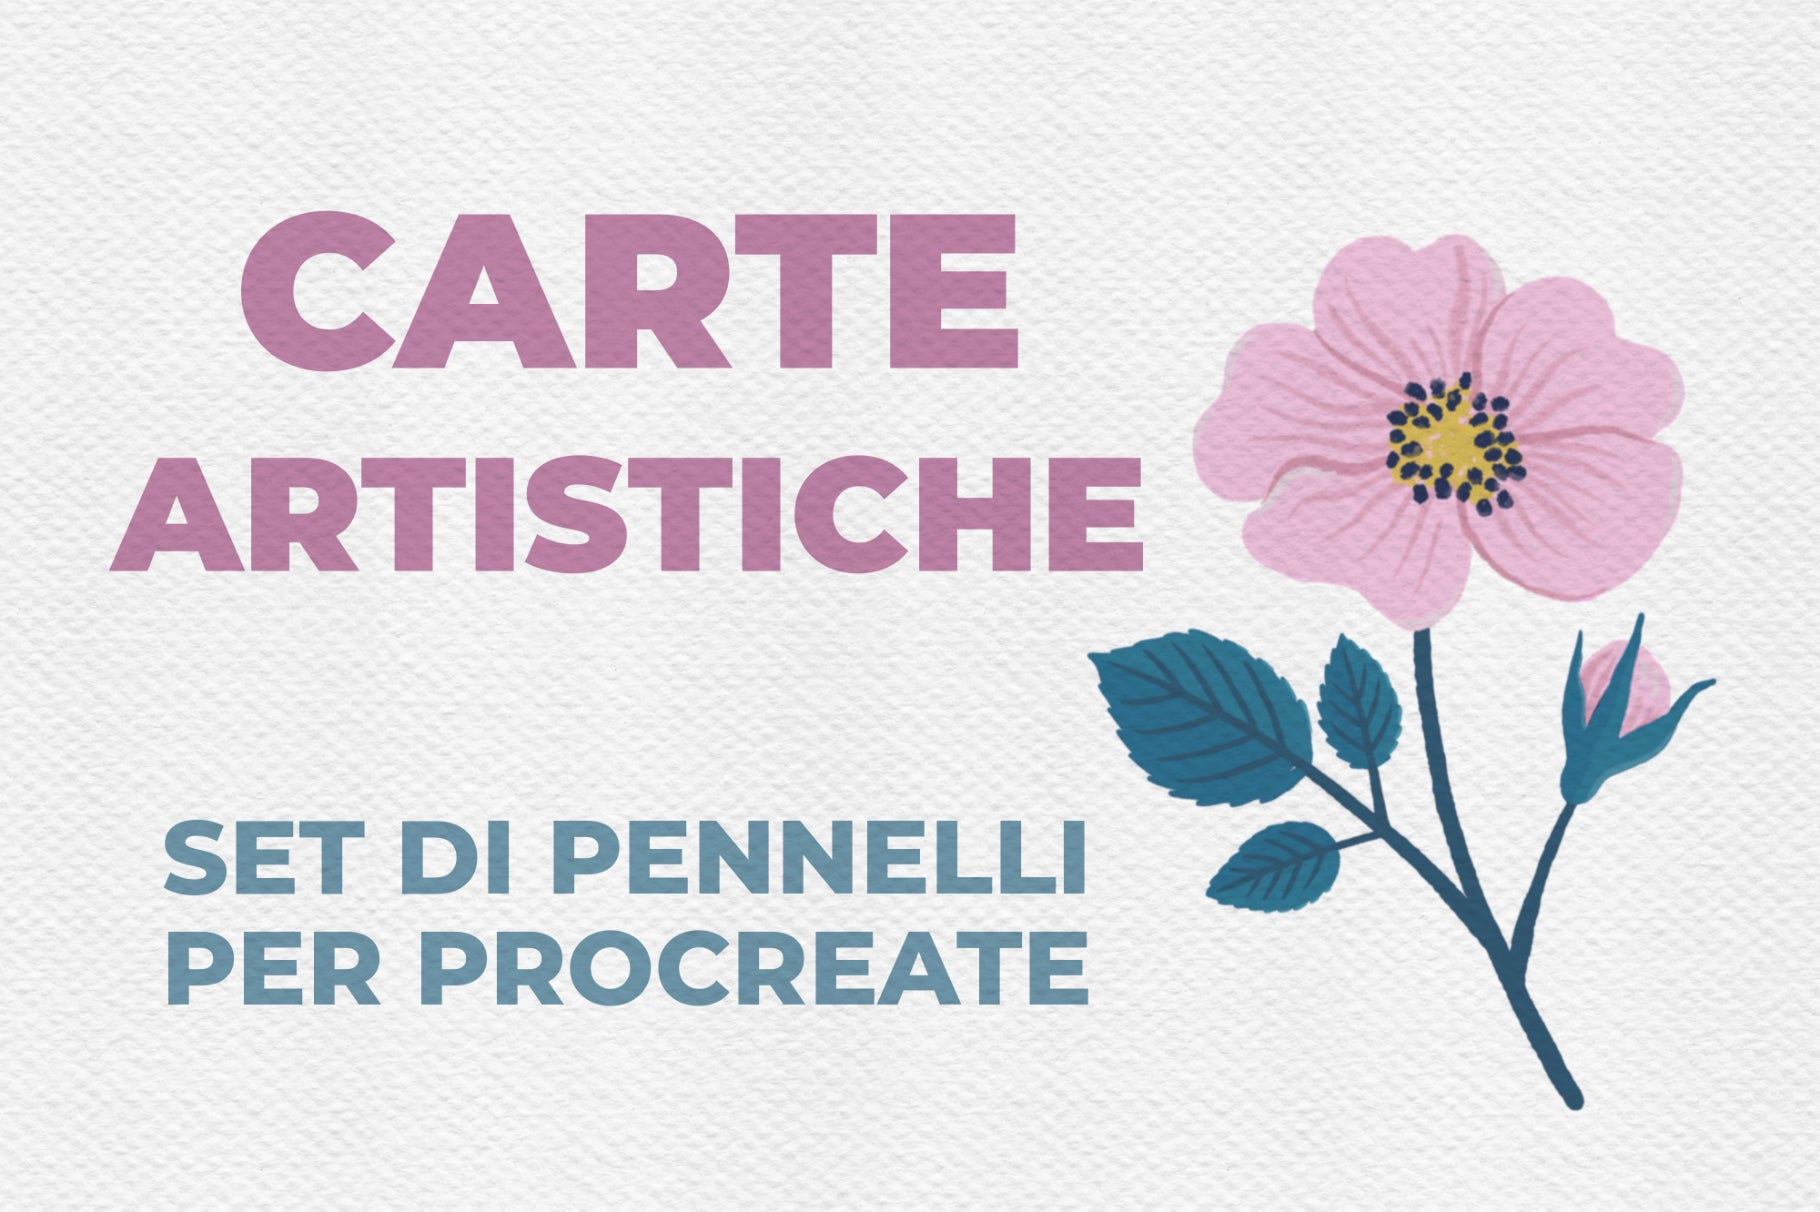 CARTE ARTISTICHE SET DI PENNELLI PER PROCREATE